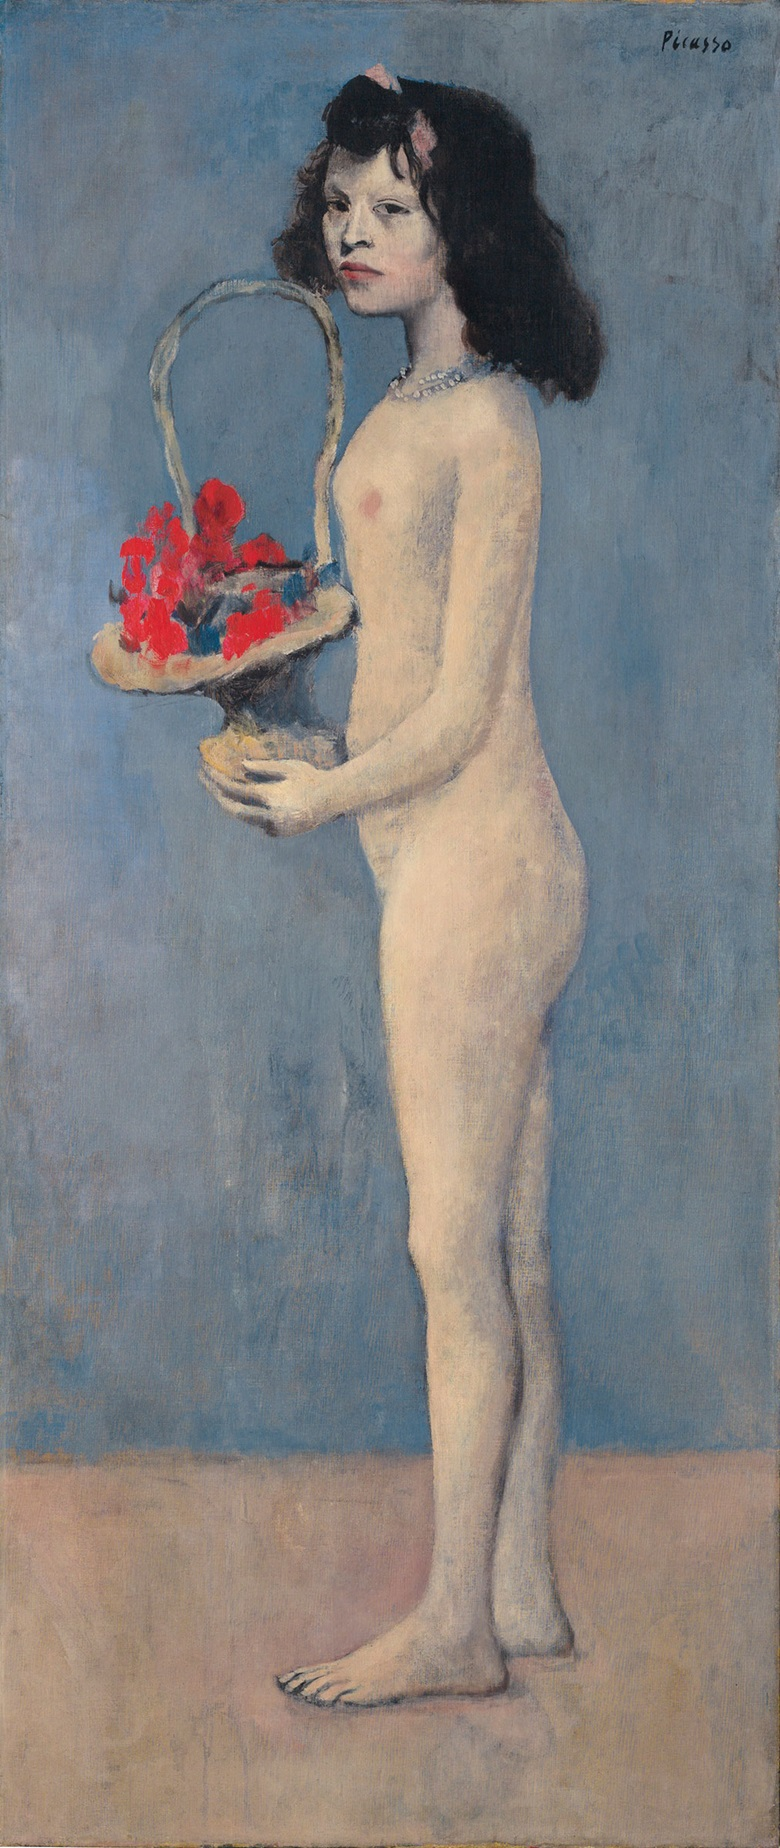 Pablo Picasso, Fillette à la corbeille fleurie, 1905. Oil on canvas. 60⅞ x 26 in (154.8 x 66.1 cm). Estimate on request. © 2017 Estate of Pablo Picasso  Artists Rights Society (ARS), New York